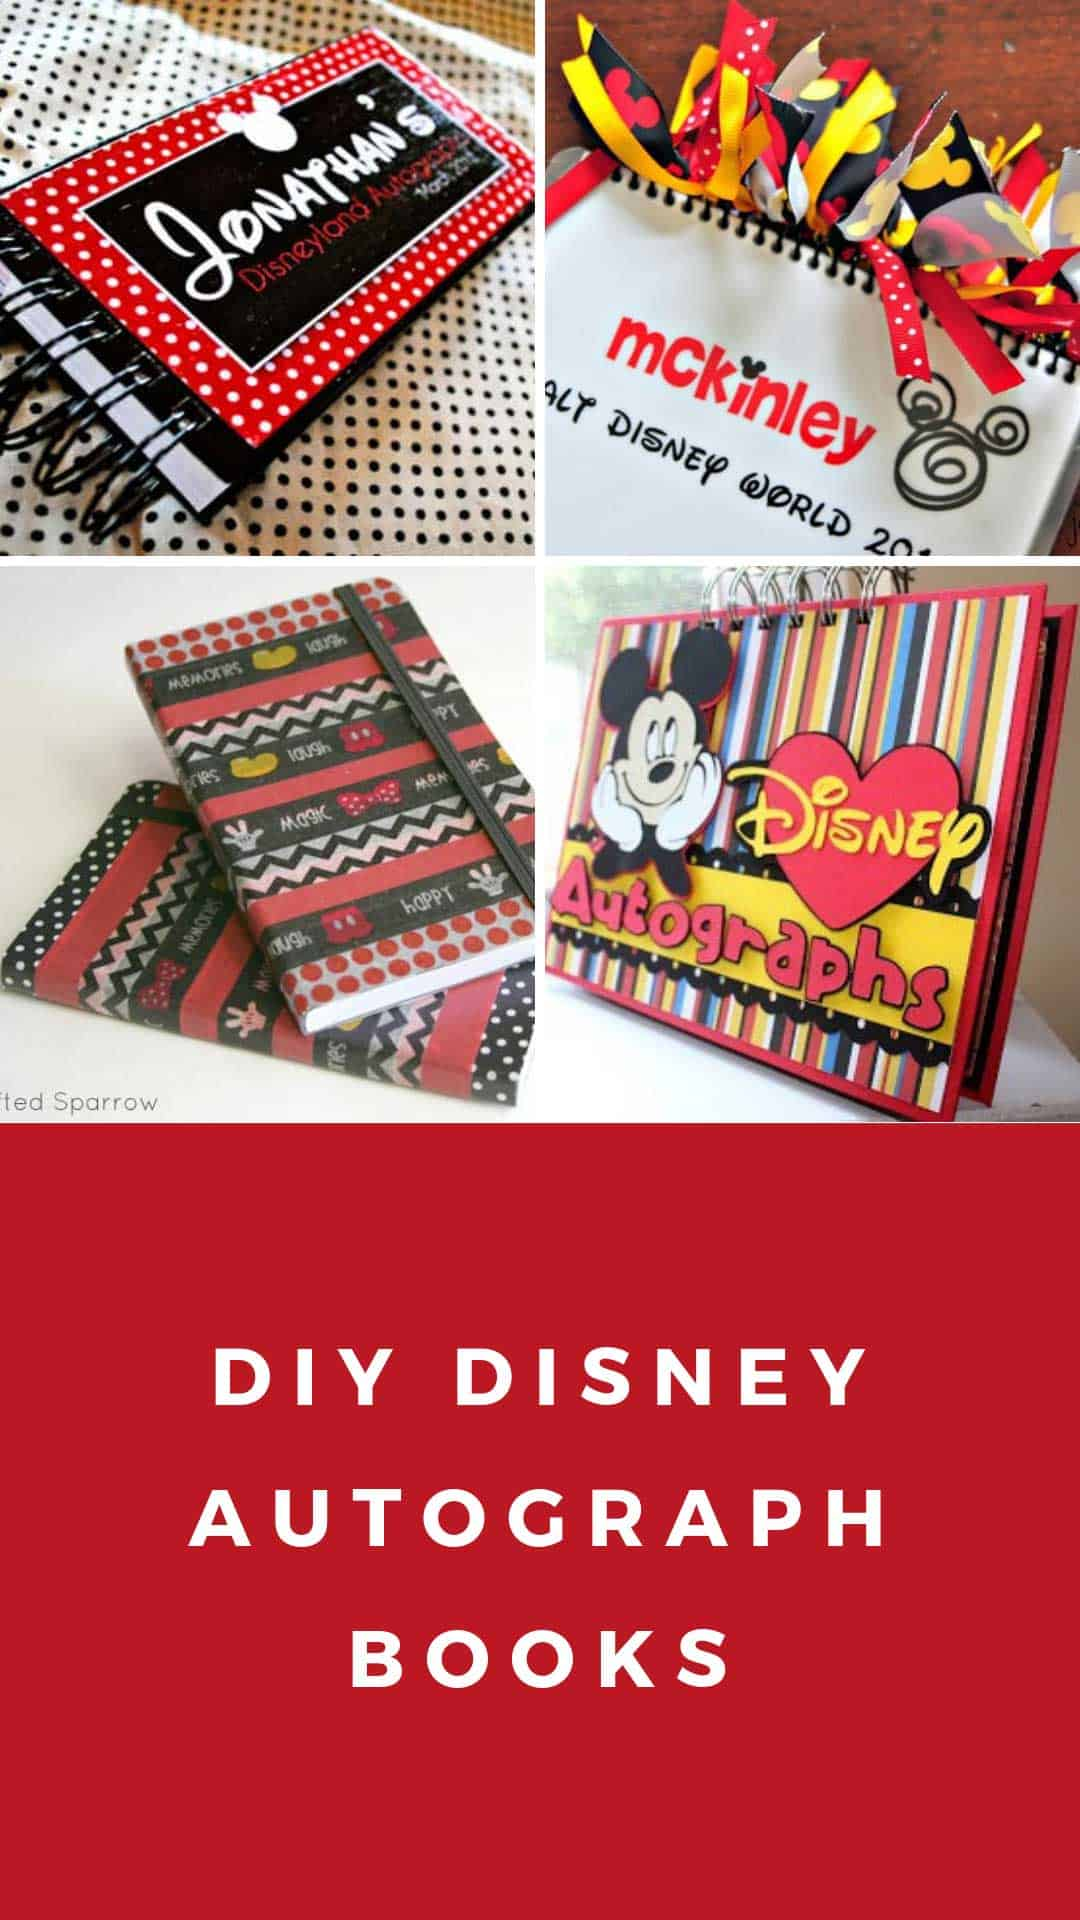 If you're heading out to Disney World be sure to make one of these DIY Disney Autograph books. They're so much fun to make and cheaper than the ones you can buy in the parks